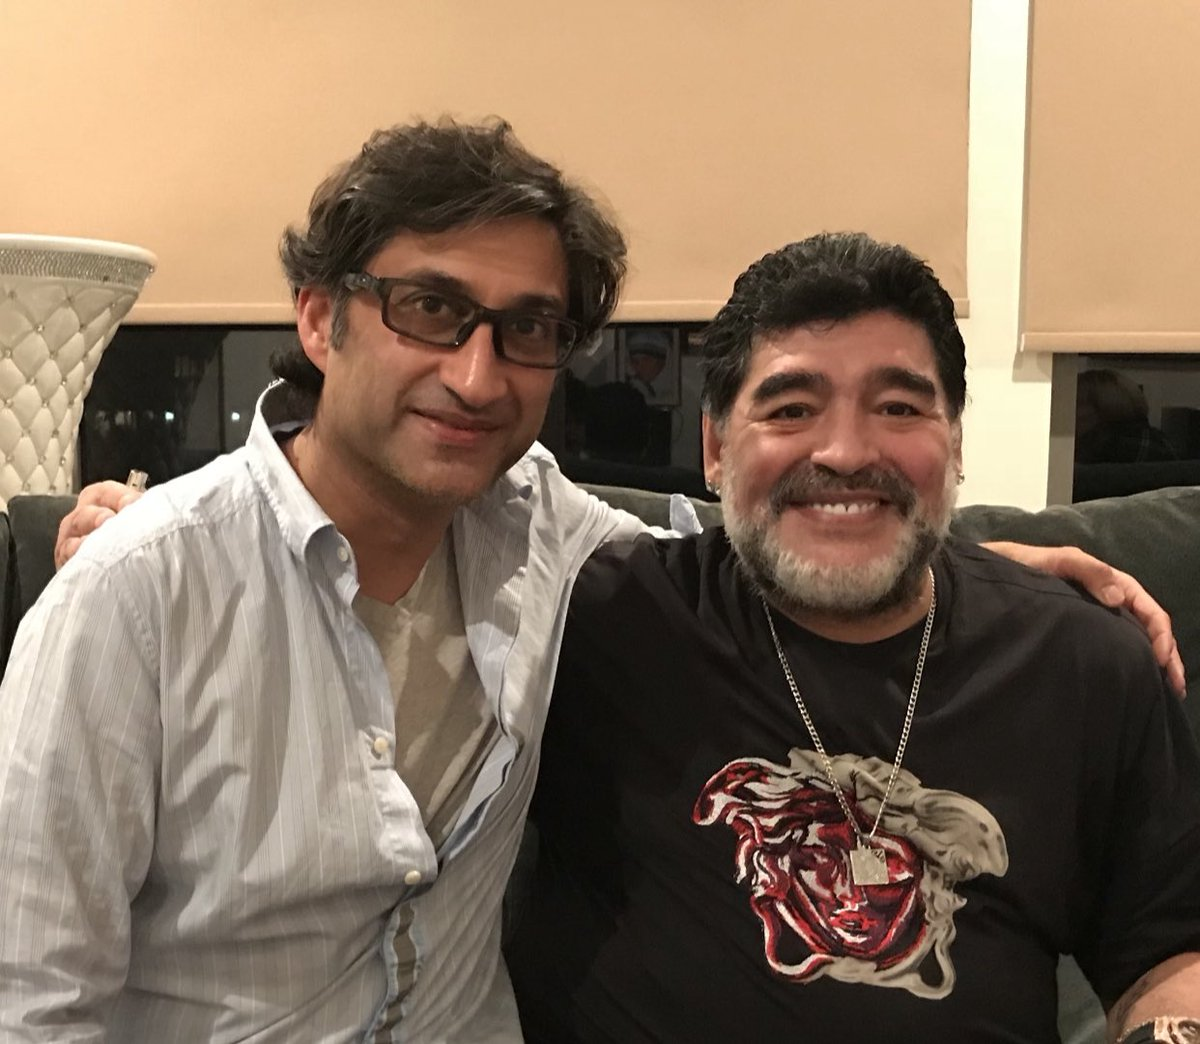 Cant quite believe DM has gone. Hard to process. He always seemed indestructible. I had 10 hours with the man!! I touched his left foot. We did our best to show the world the man, the myth, the fighter he was. The greatest #legend #DiegoMaradona @MaradonaMovie #Diego #maradona